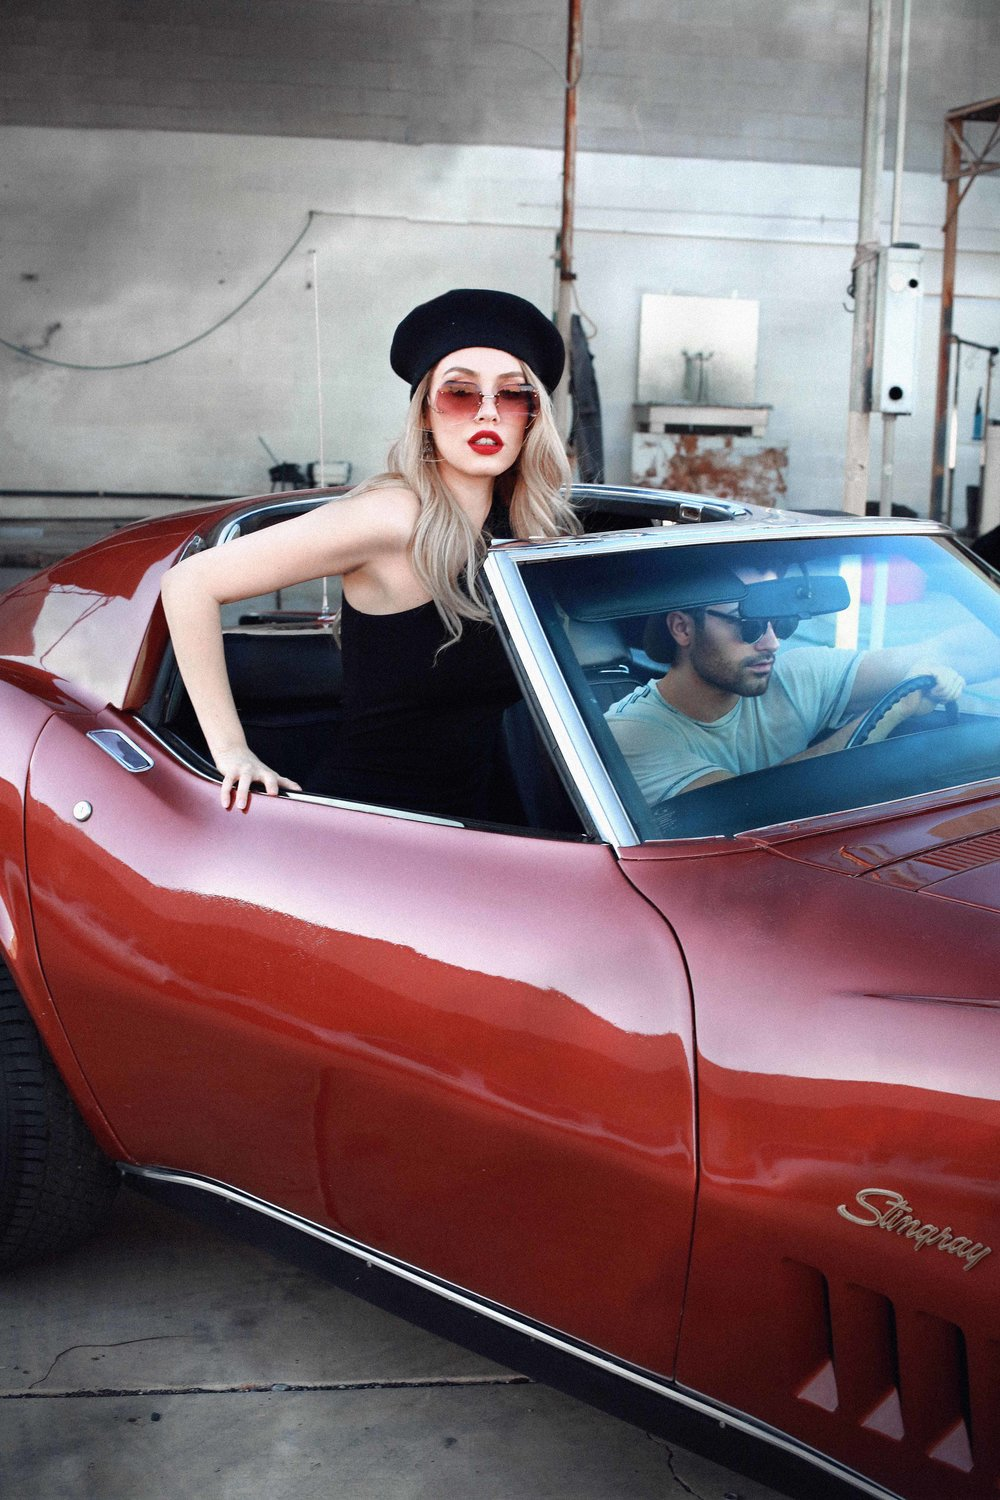 BABES & CARS - VIVA LAS VEGAS AUTOS - Classic Cars Photo Shoot Love Couples Story by Alyssa Risley - IG @alyssarisley